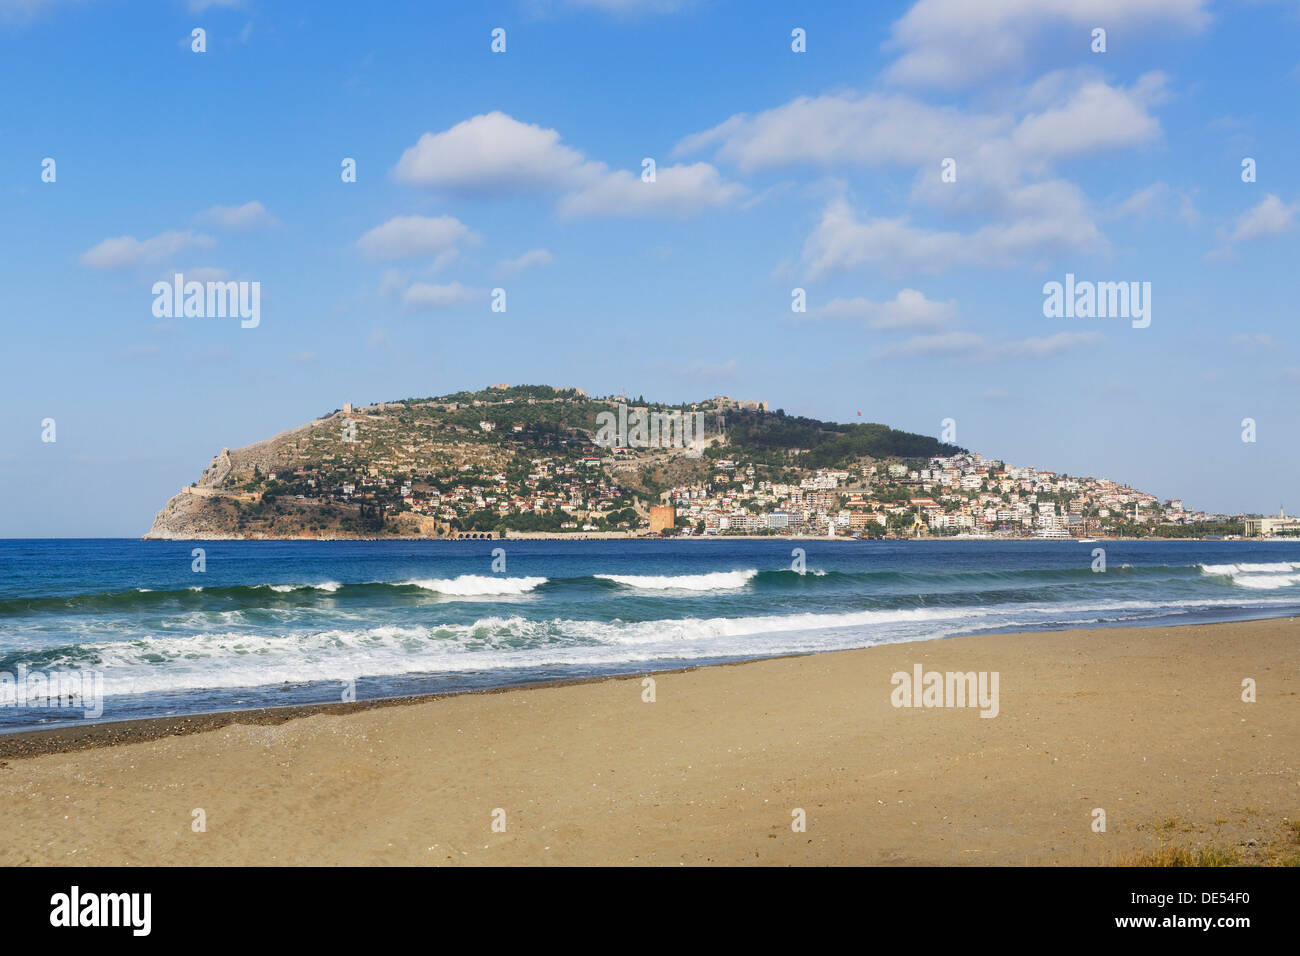 Keykobat beach with the hill of Alanya Castle and the town of Alanya, Alanya, Turkish Riviera, Province of Antalya - Stock Image